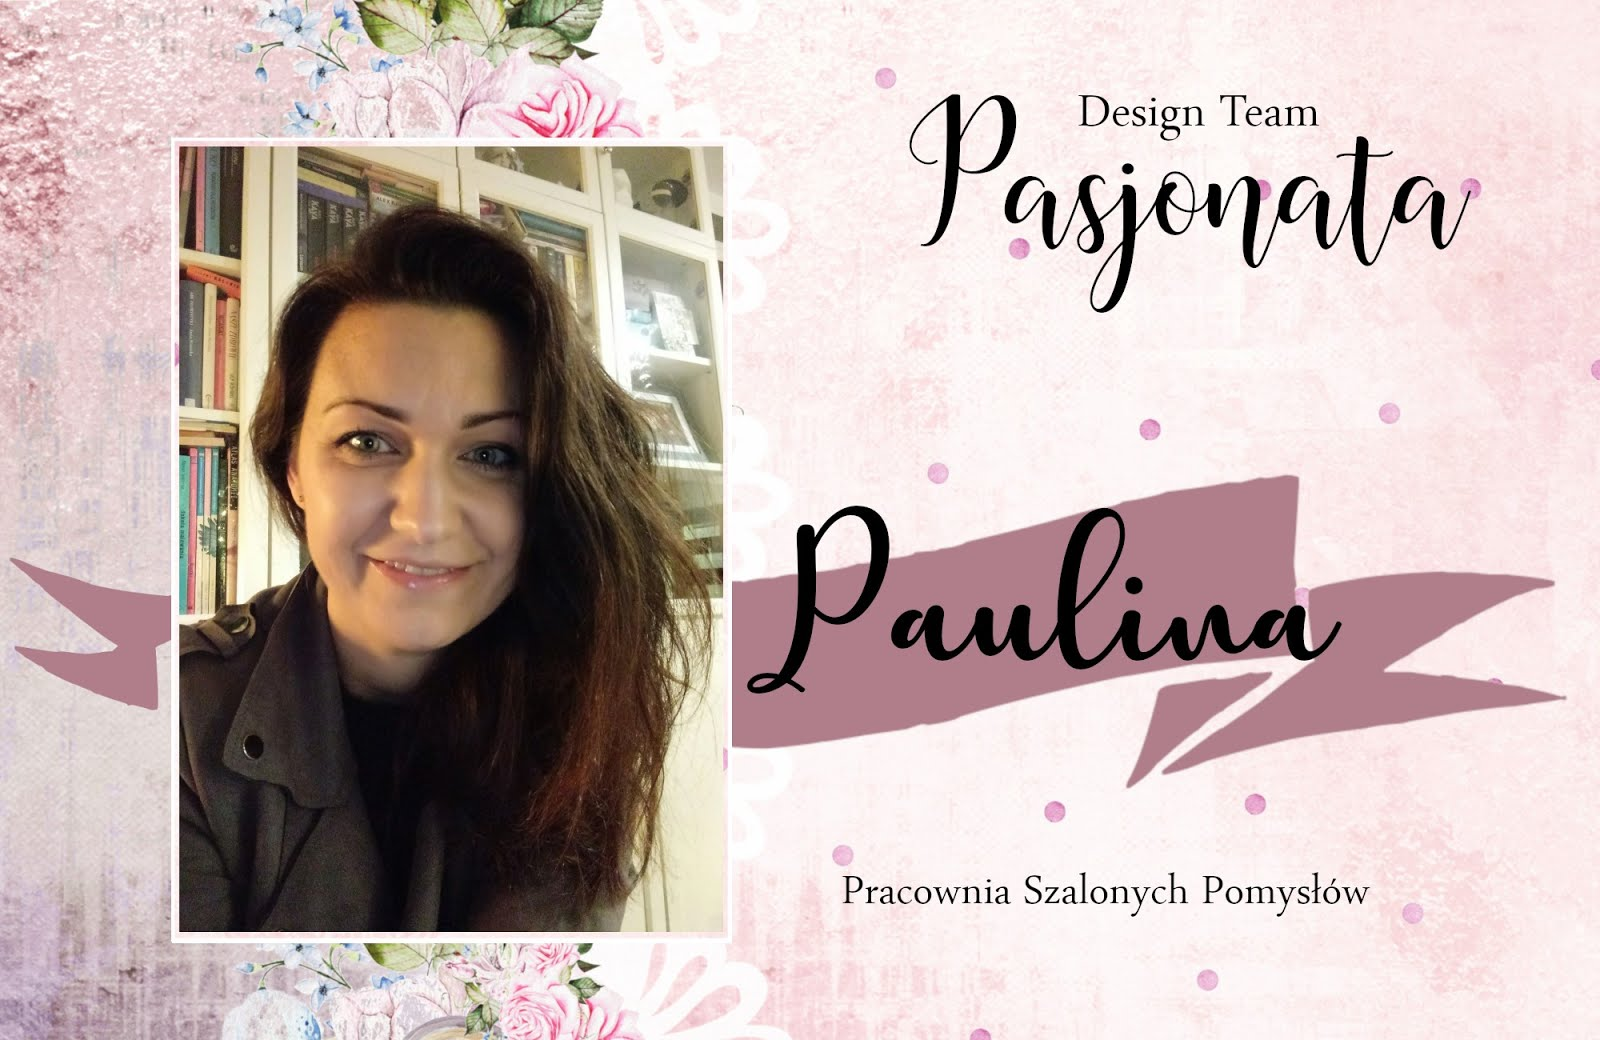 Design Team Paulina